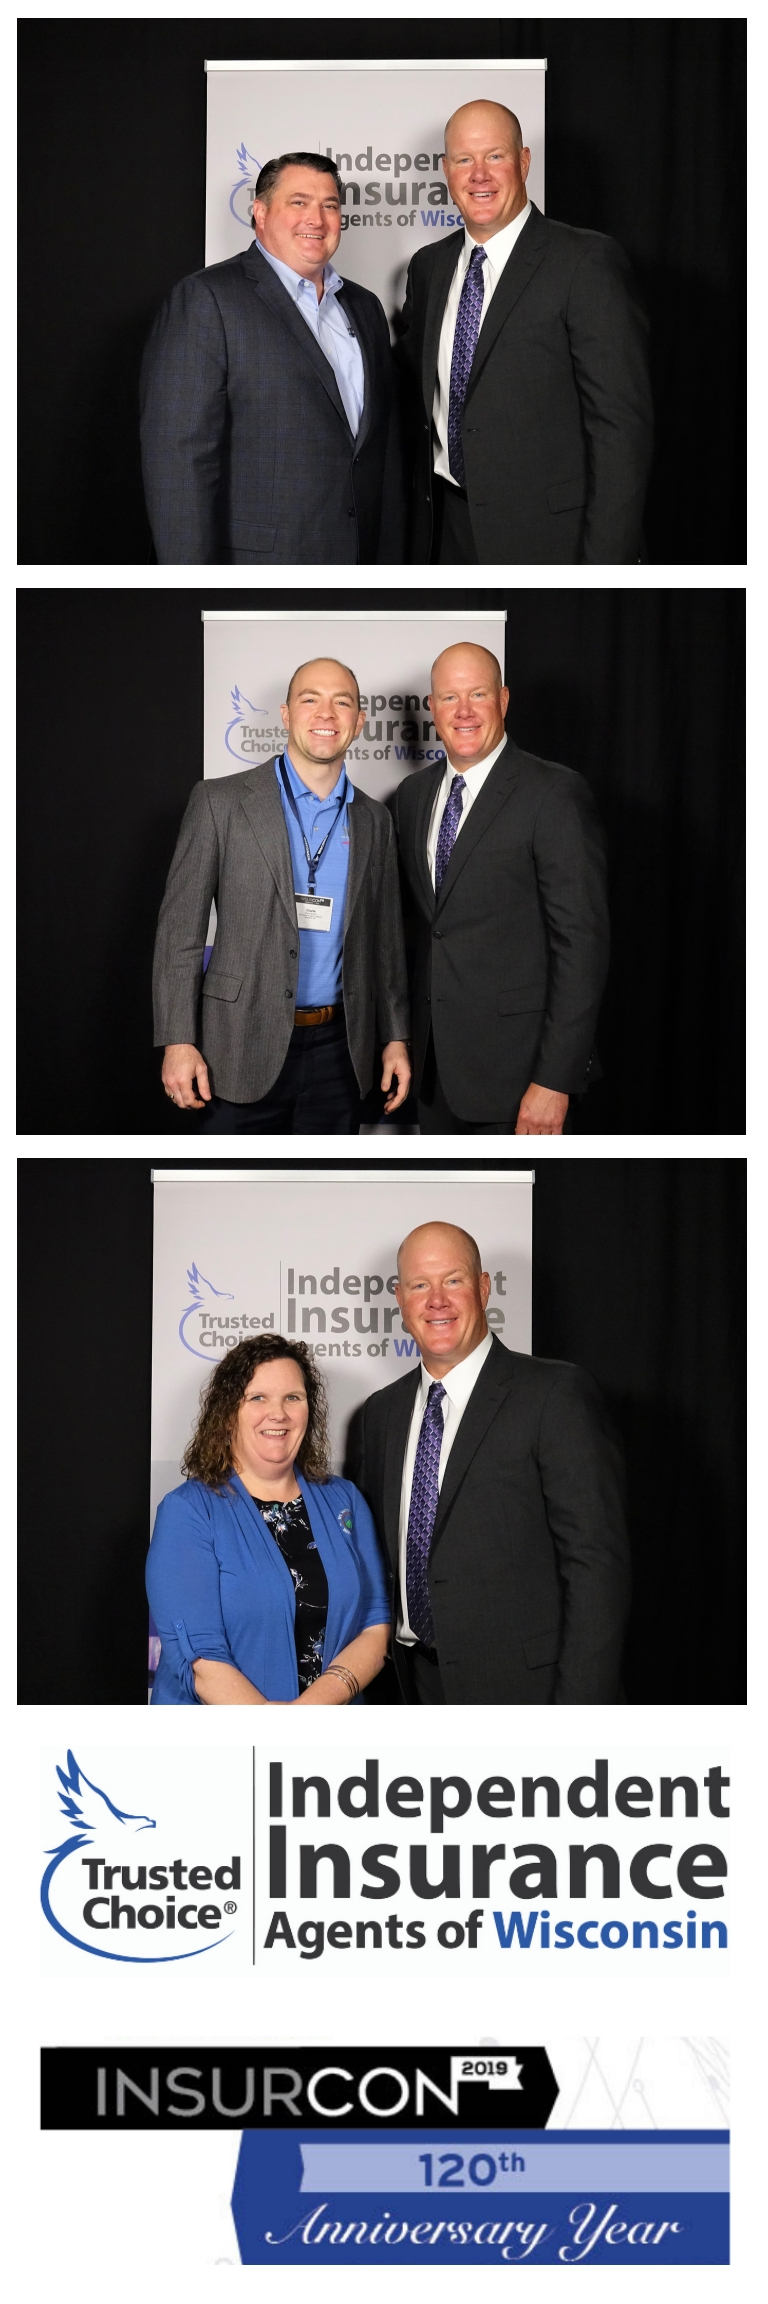 2 x 6 strip for a Meet & Greet with famed MLB Pitcher Jim Abbott at the InsurCon 2019 Annual Conference for the Independent Insurance Agents of Wisconsin. Looking for a photobooth for your conference or fundraising gala? This is a great way to add on fundraising opportunities.